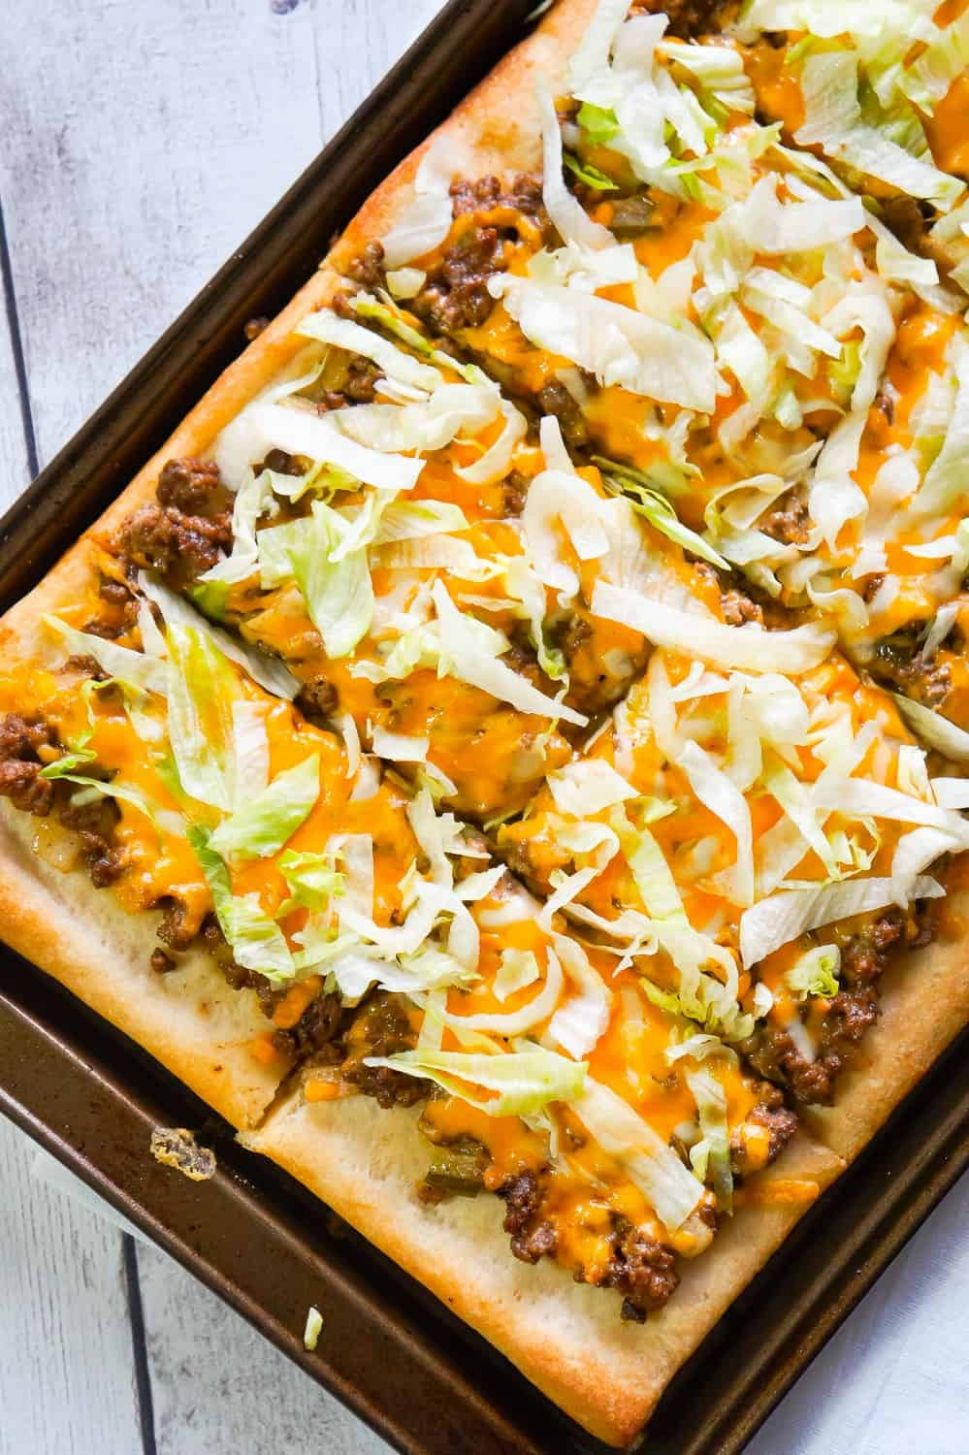 Big Mac Pizza - This is Not Diet Food - Recipes With Pizza Dough And Ground Beef